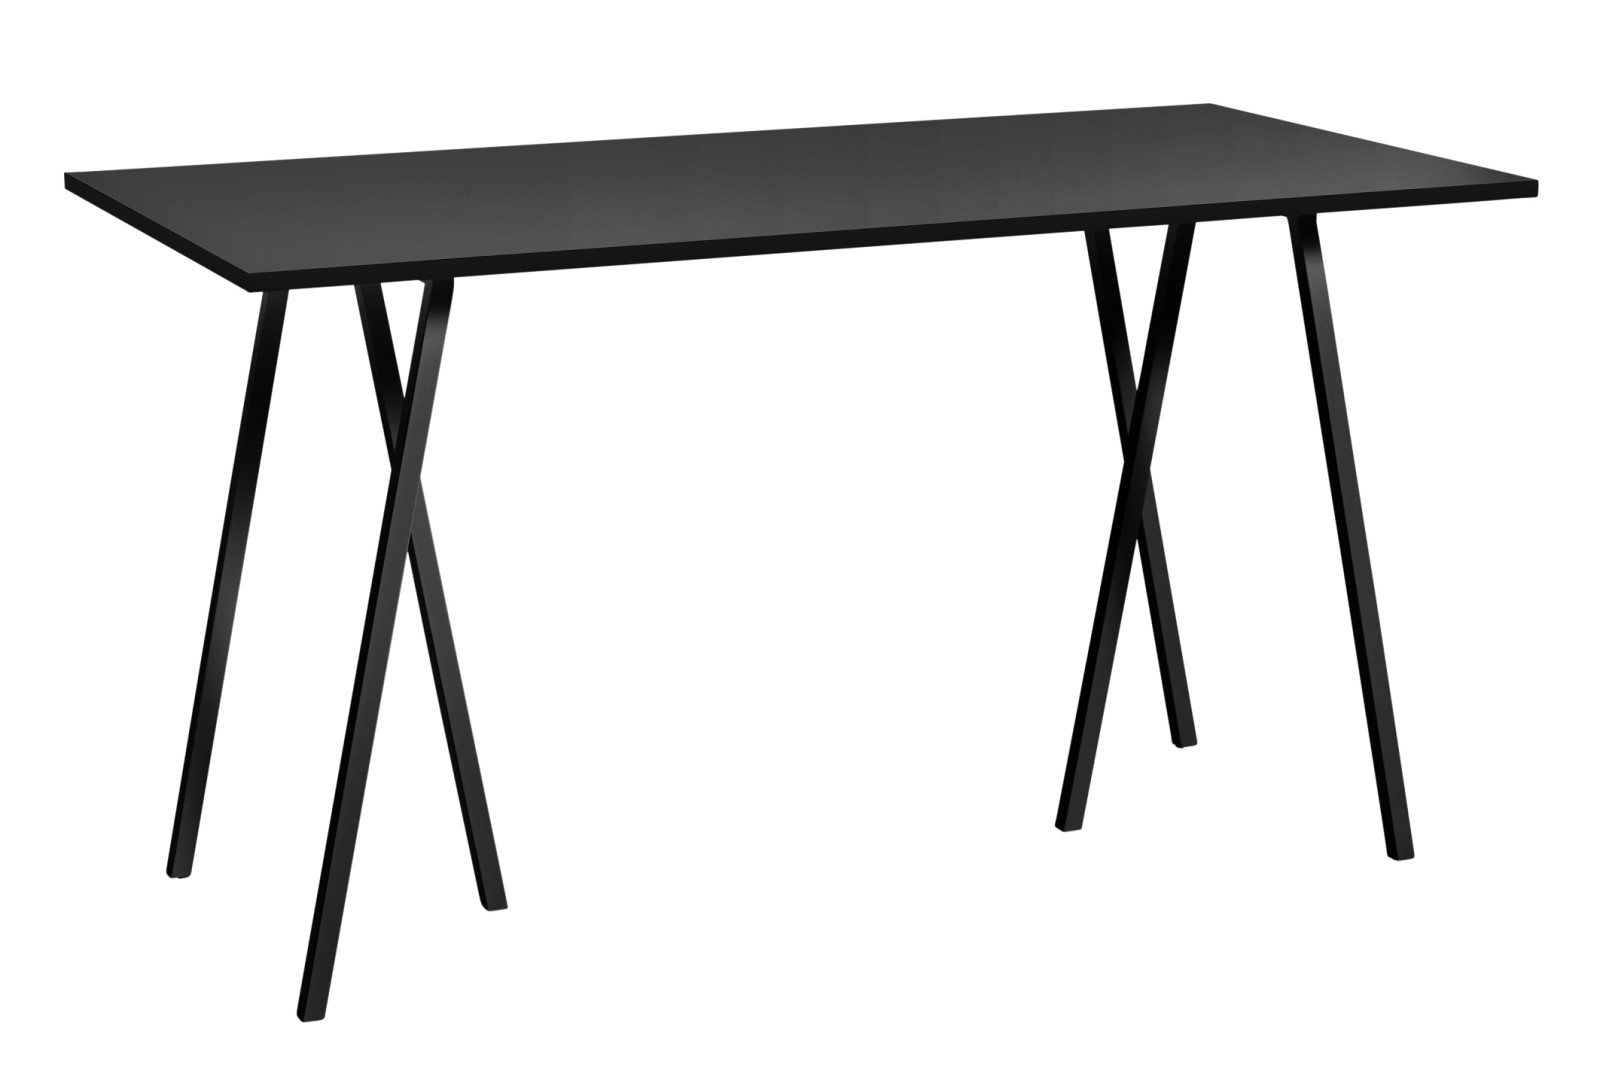 Loop Stand Rectangular High Table Linoleum Black, 180 x 87.5cm